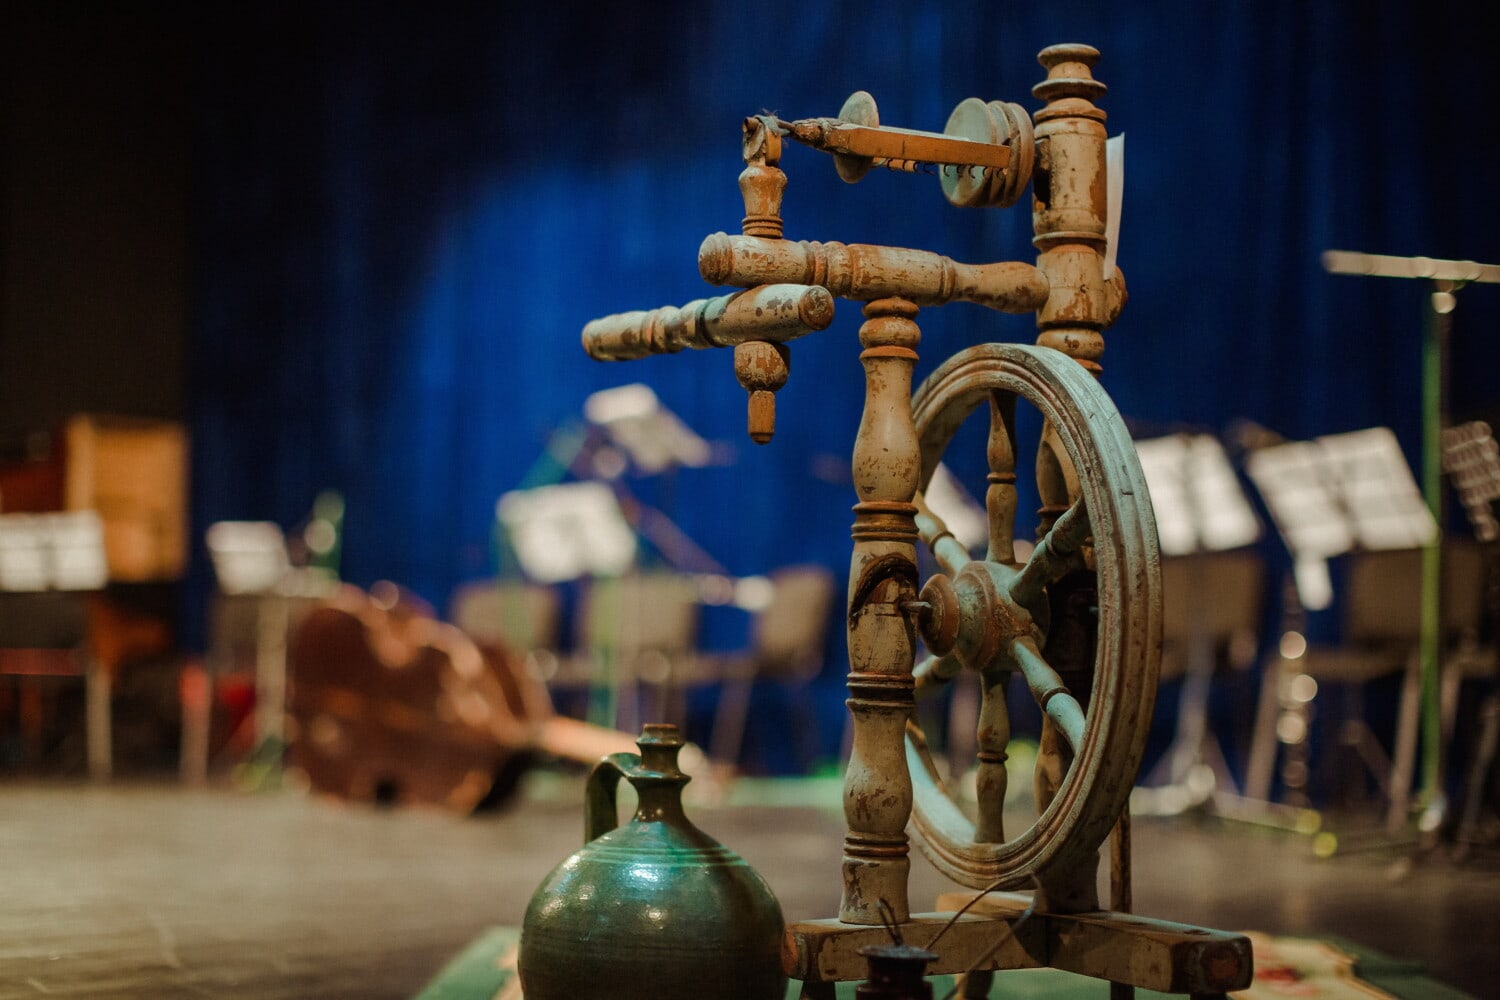 antiquity, museum, handmade, object, theatre, machine, device, old, industry, wood